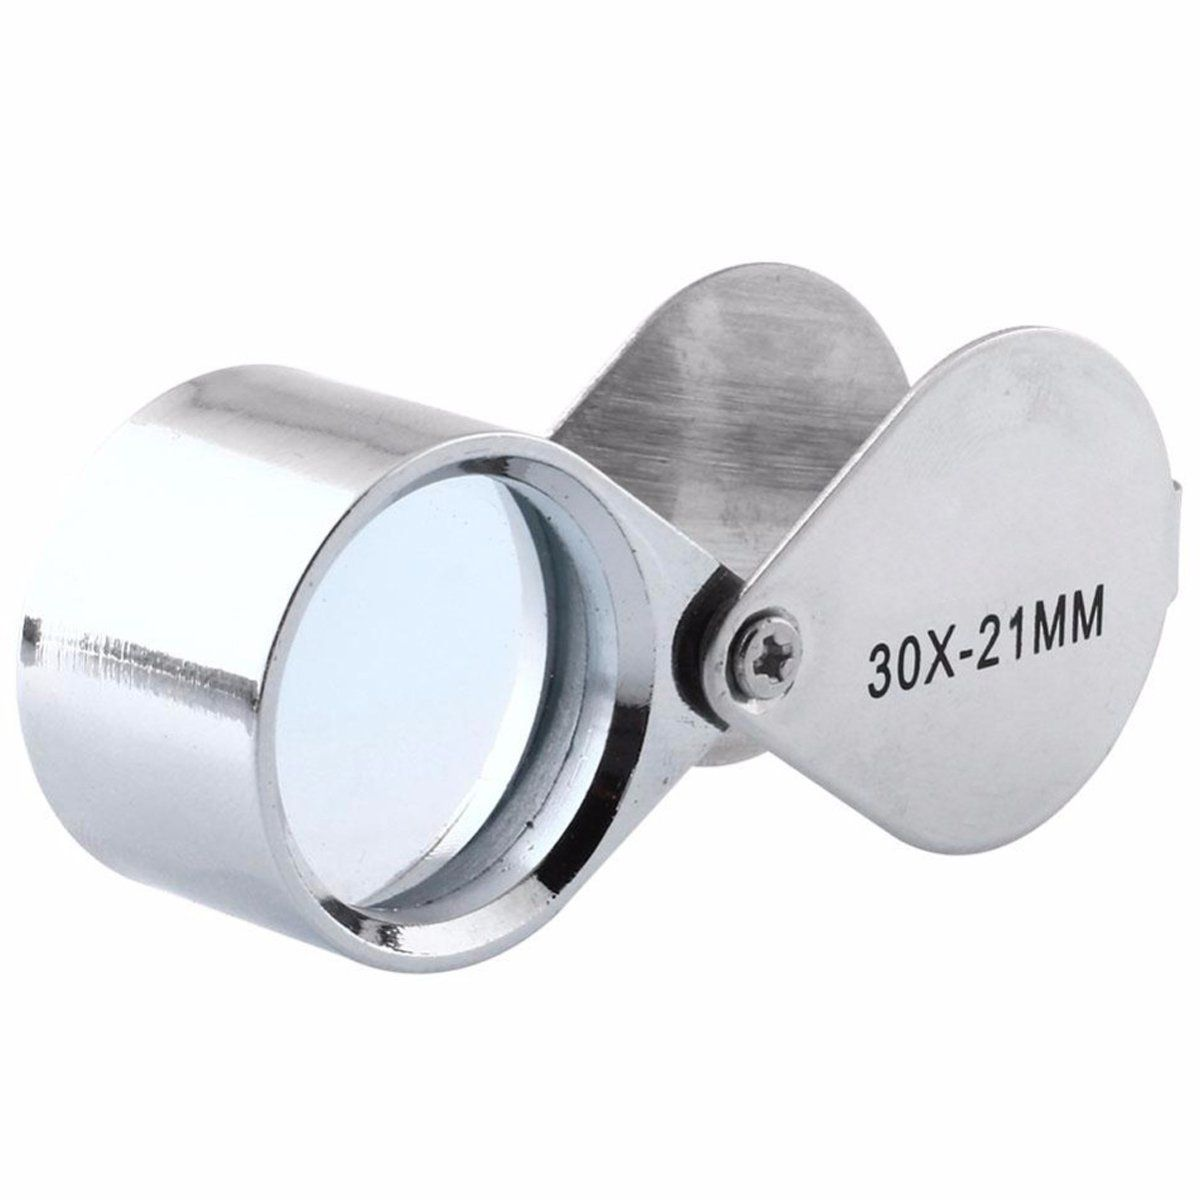 KINGMAS Pocket Jewelry Loupe 30x 21mm Jewelers Eye Magnifying Glass Magnifier